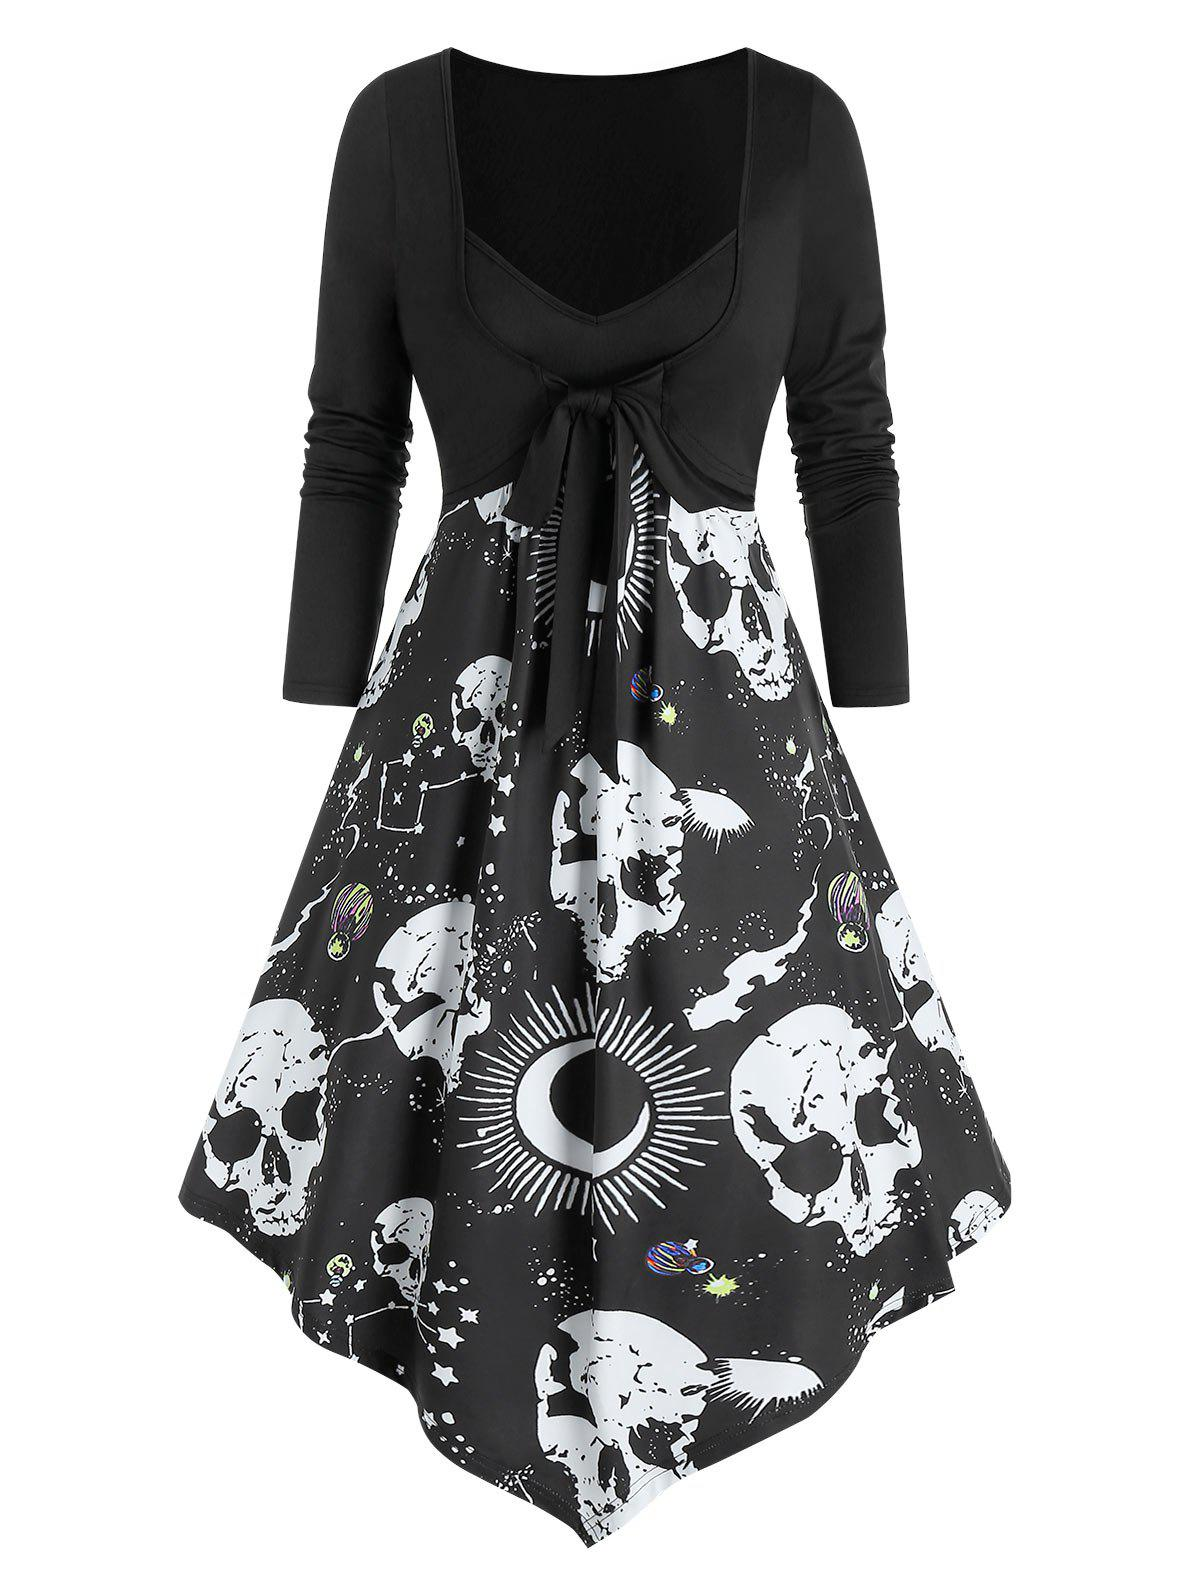 Best Skull Starry Print 2 in 1 Bowknot Asymmetrical Dress